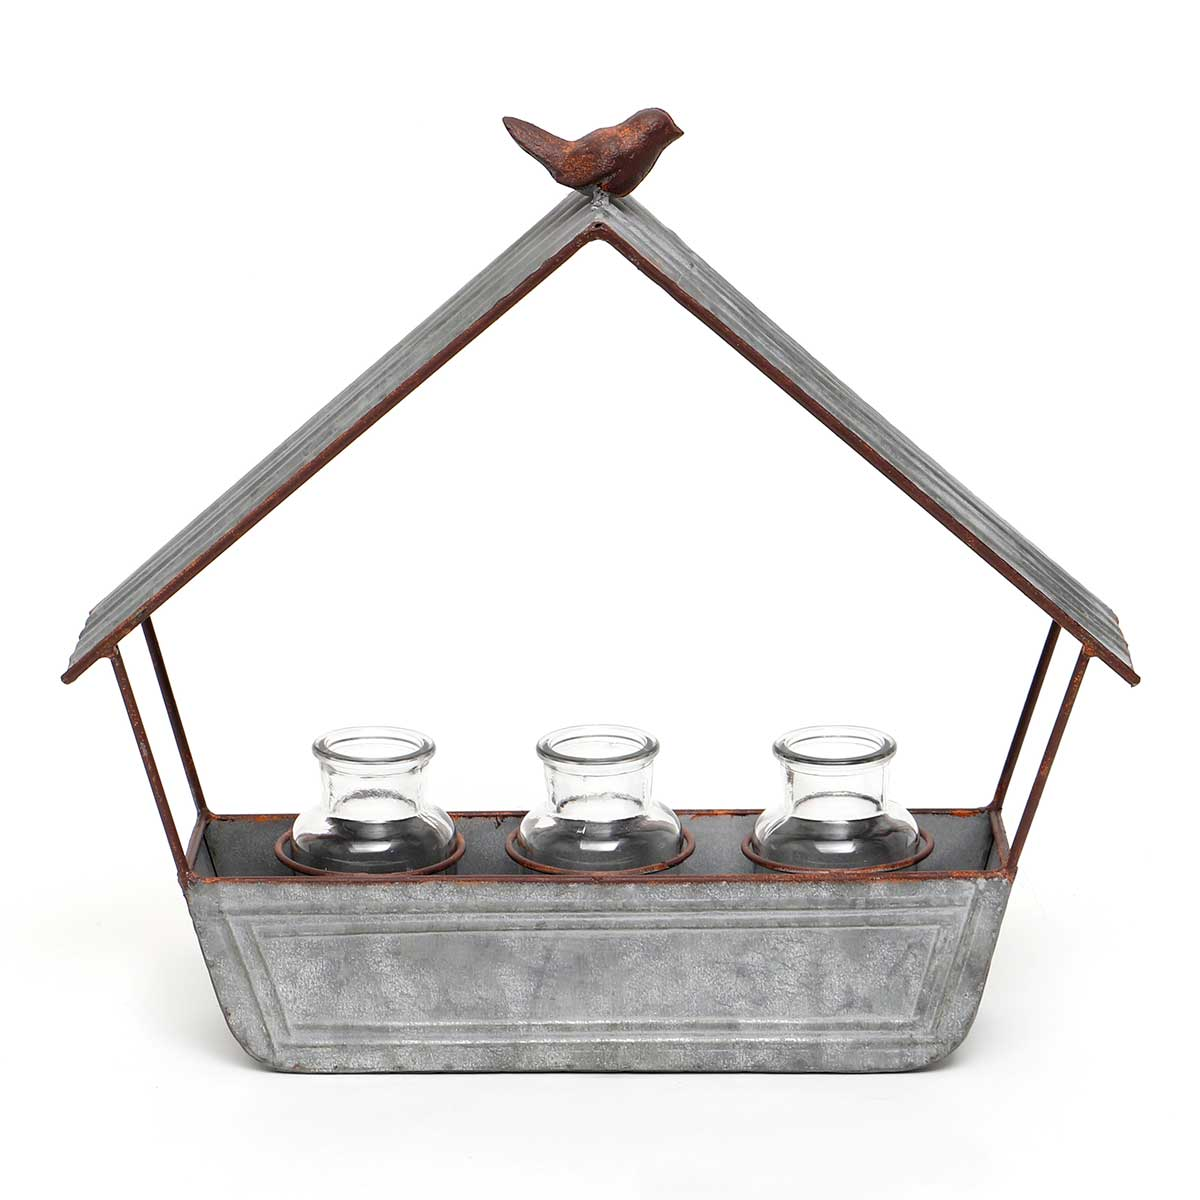 METAL HOUSE WALL HANGER WITH BIRD AND 3 GLASS BOTTLES